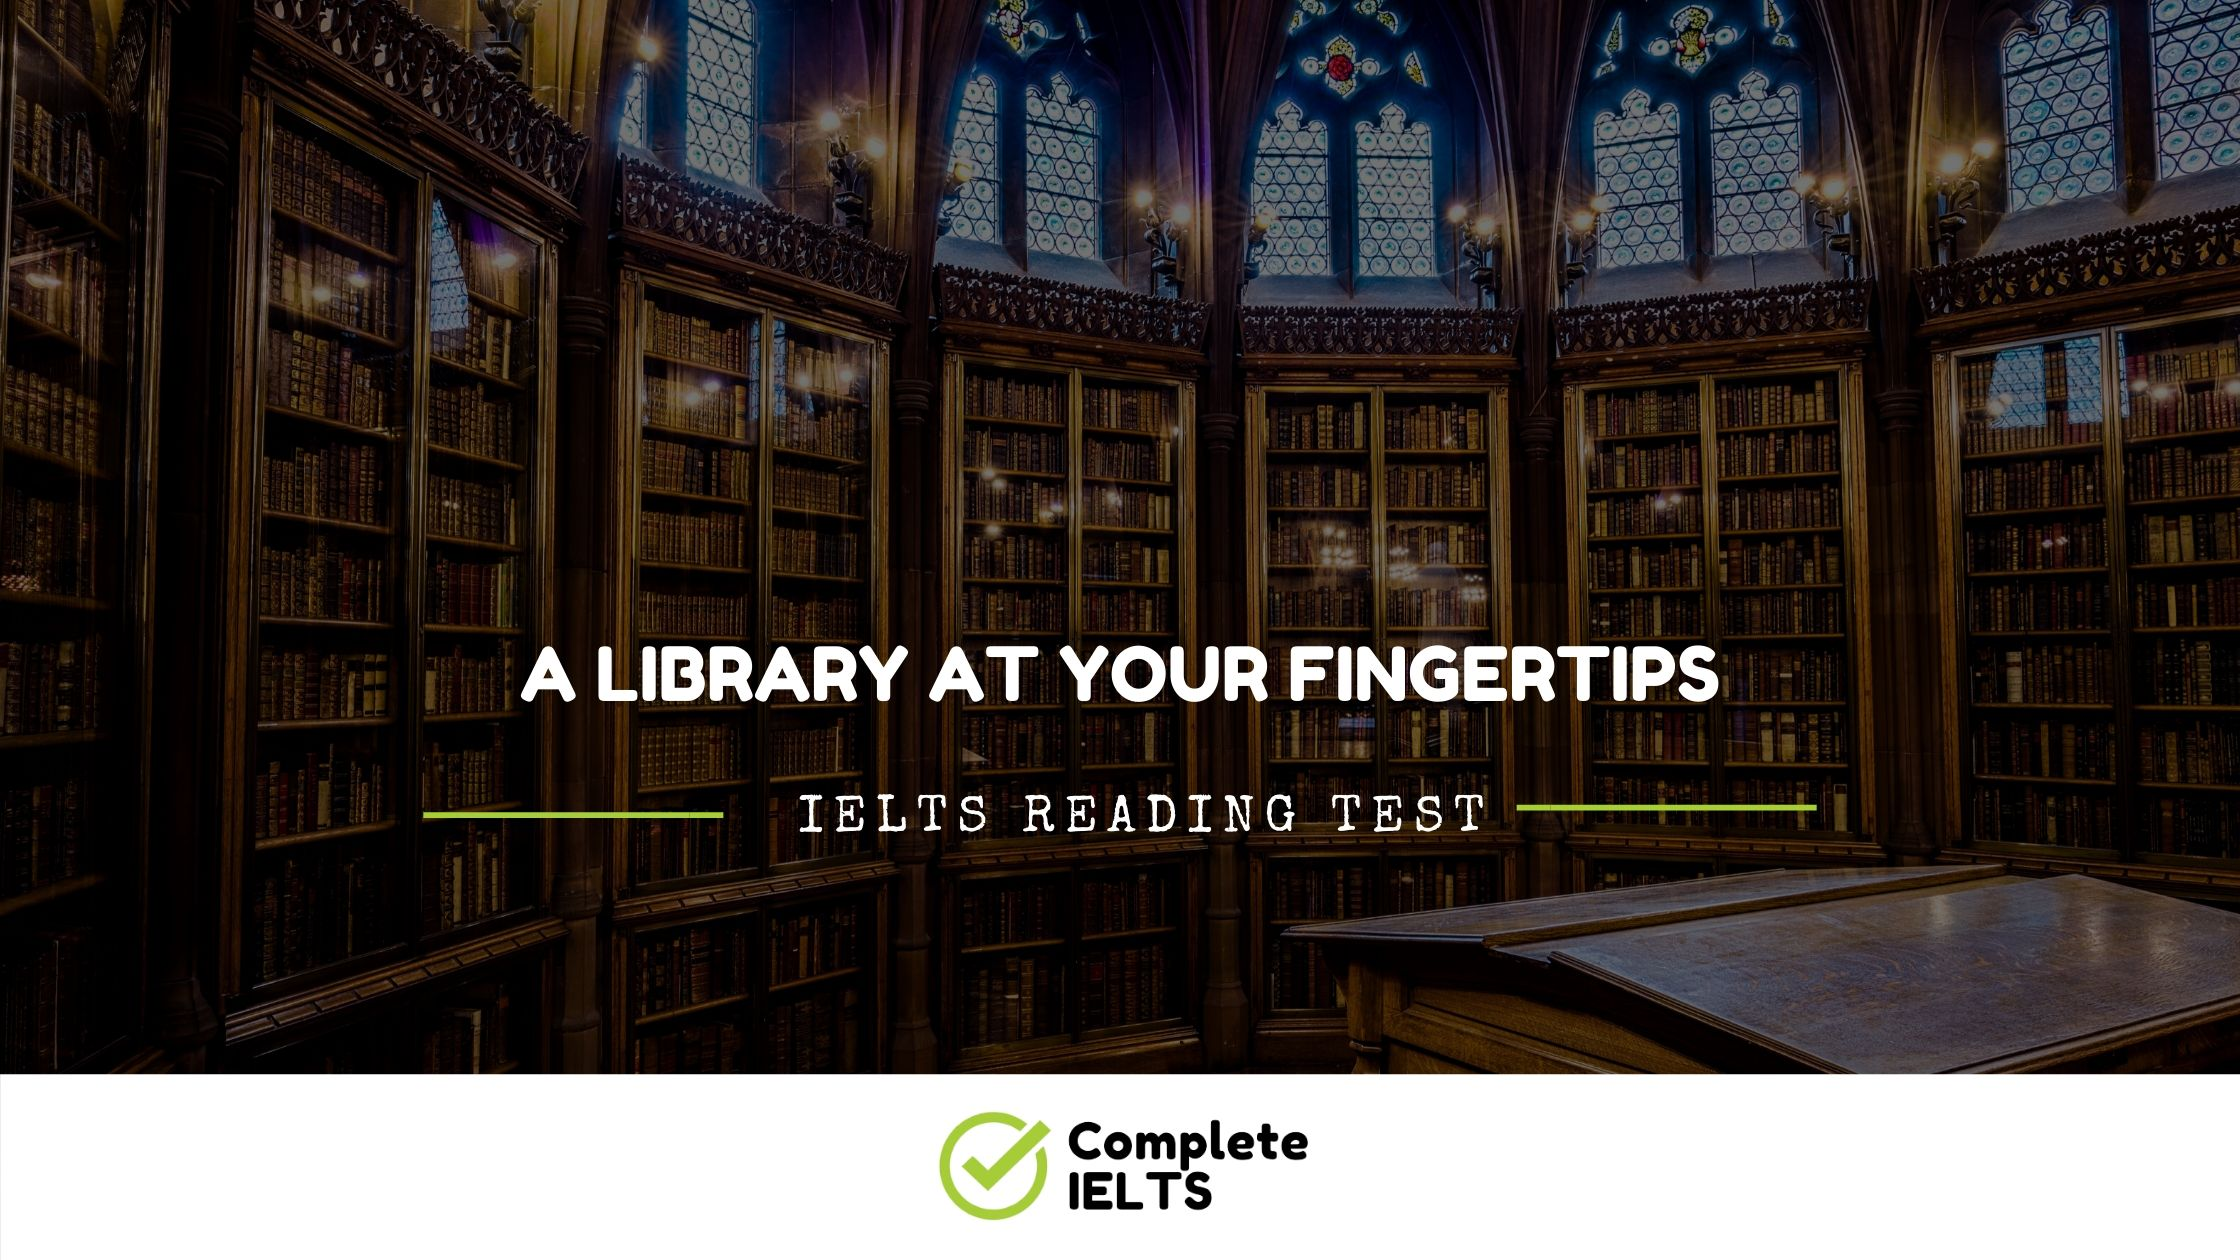 A LIBRARY AT YOUR FINGERTIPS